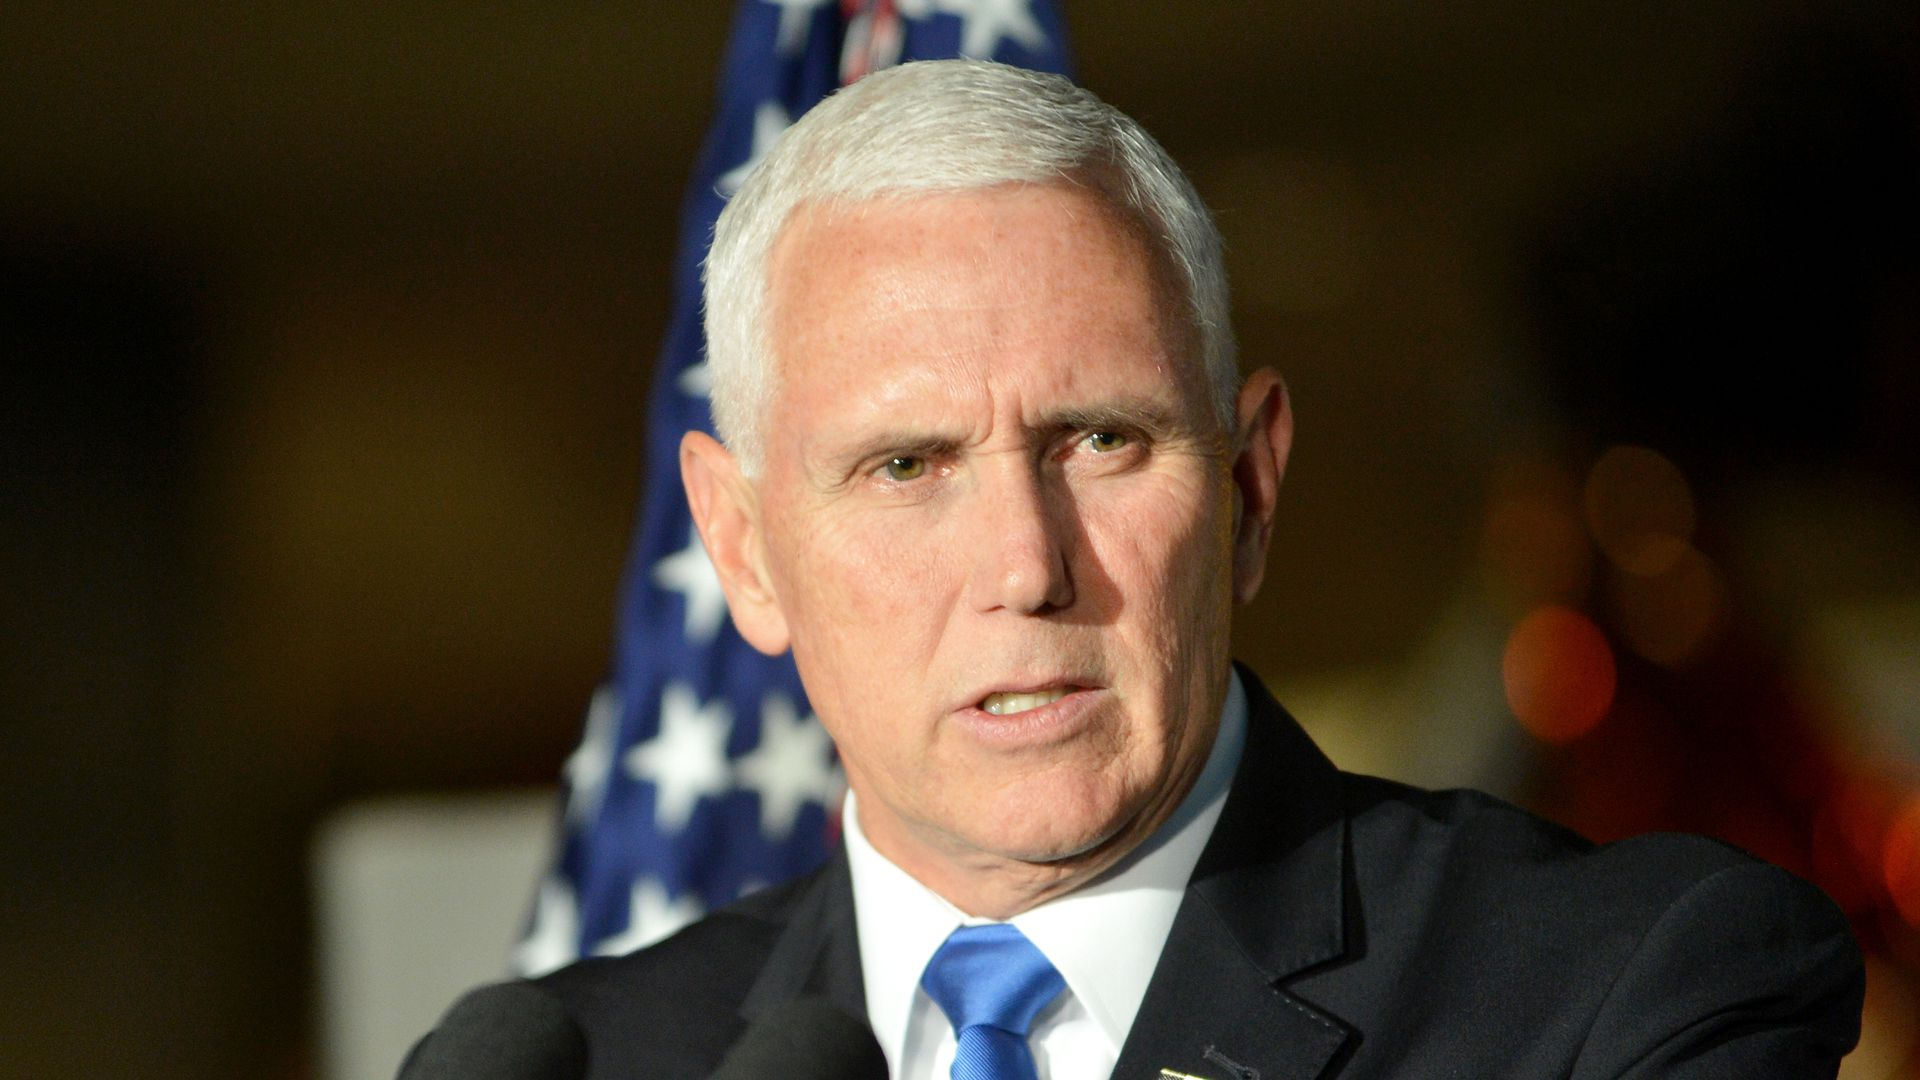 Pence Taylor University address: Dozens walk out in protest moments before speech